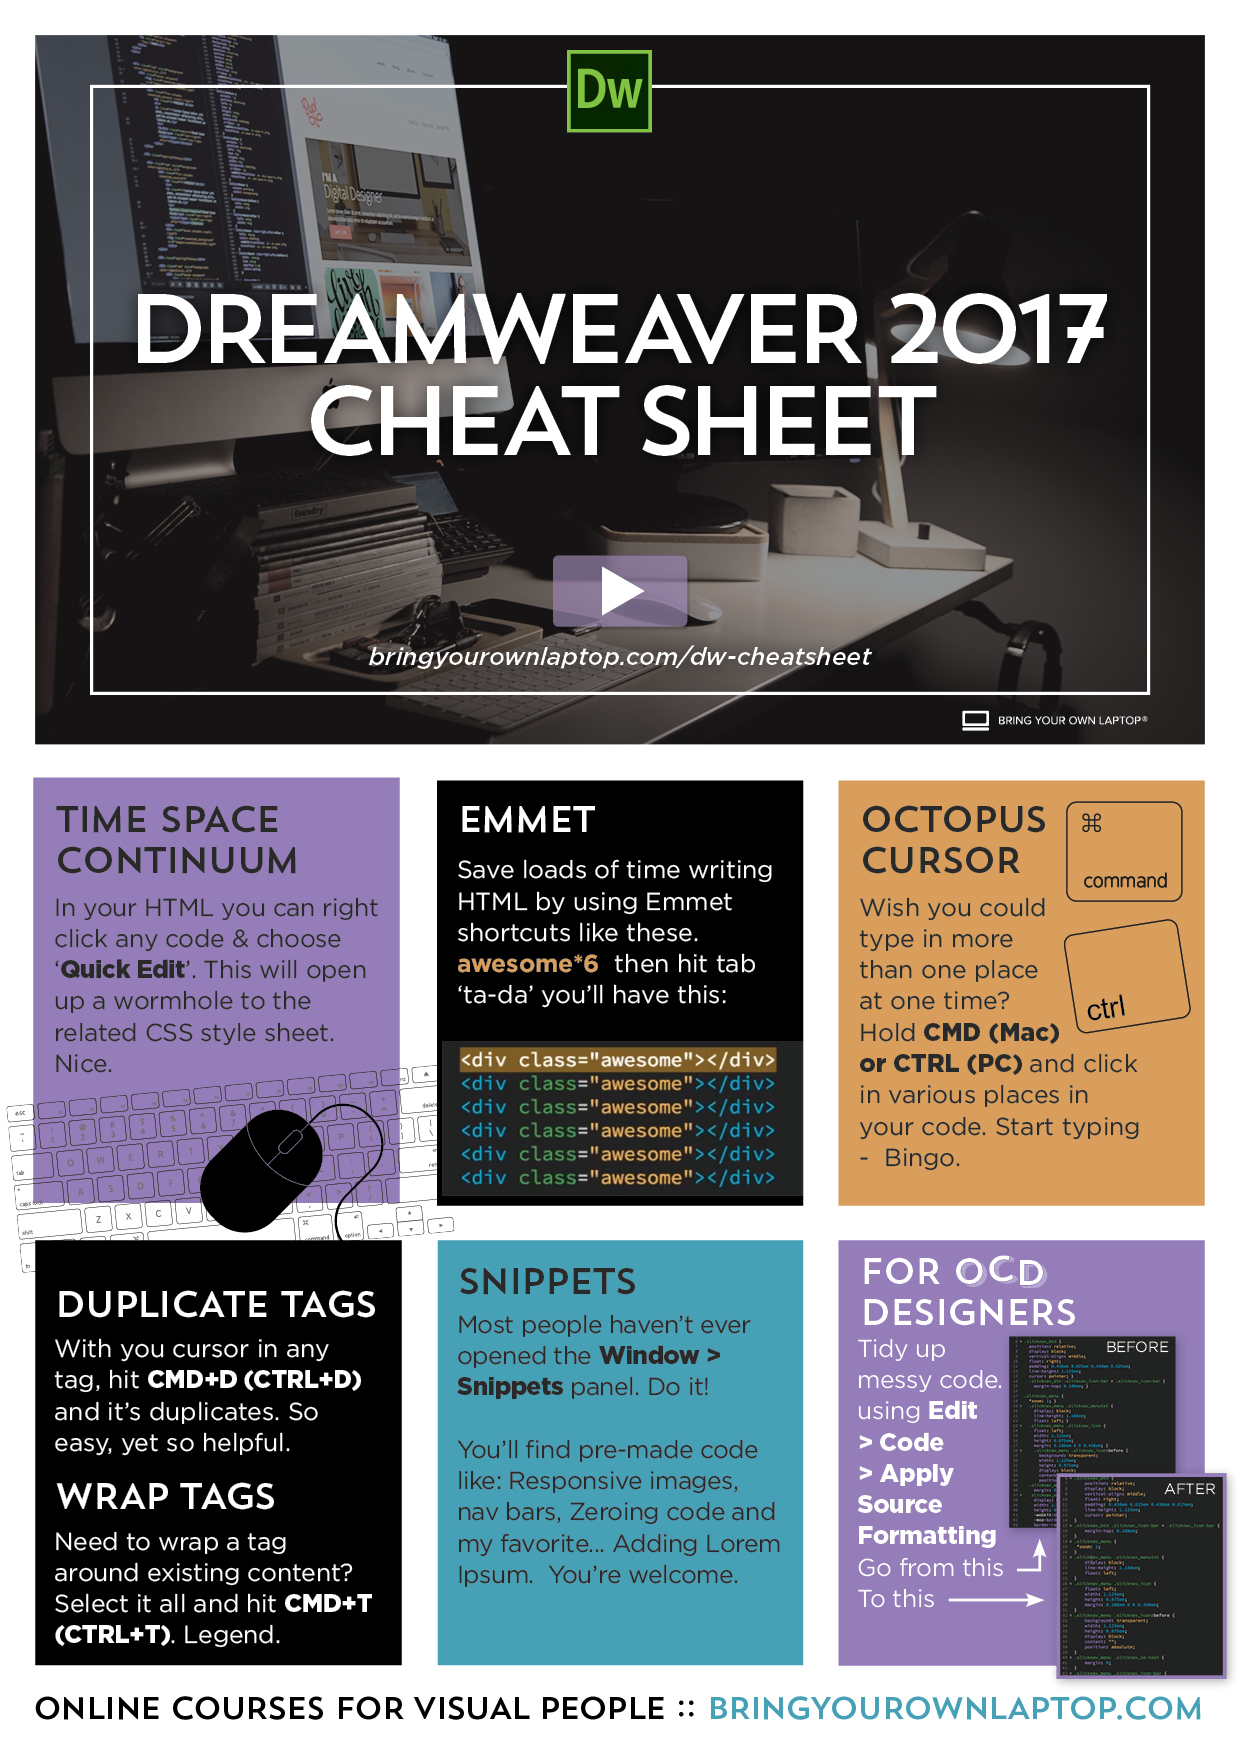 Dreamweaver CC 2017 Cheat Sheet